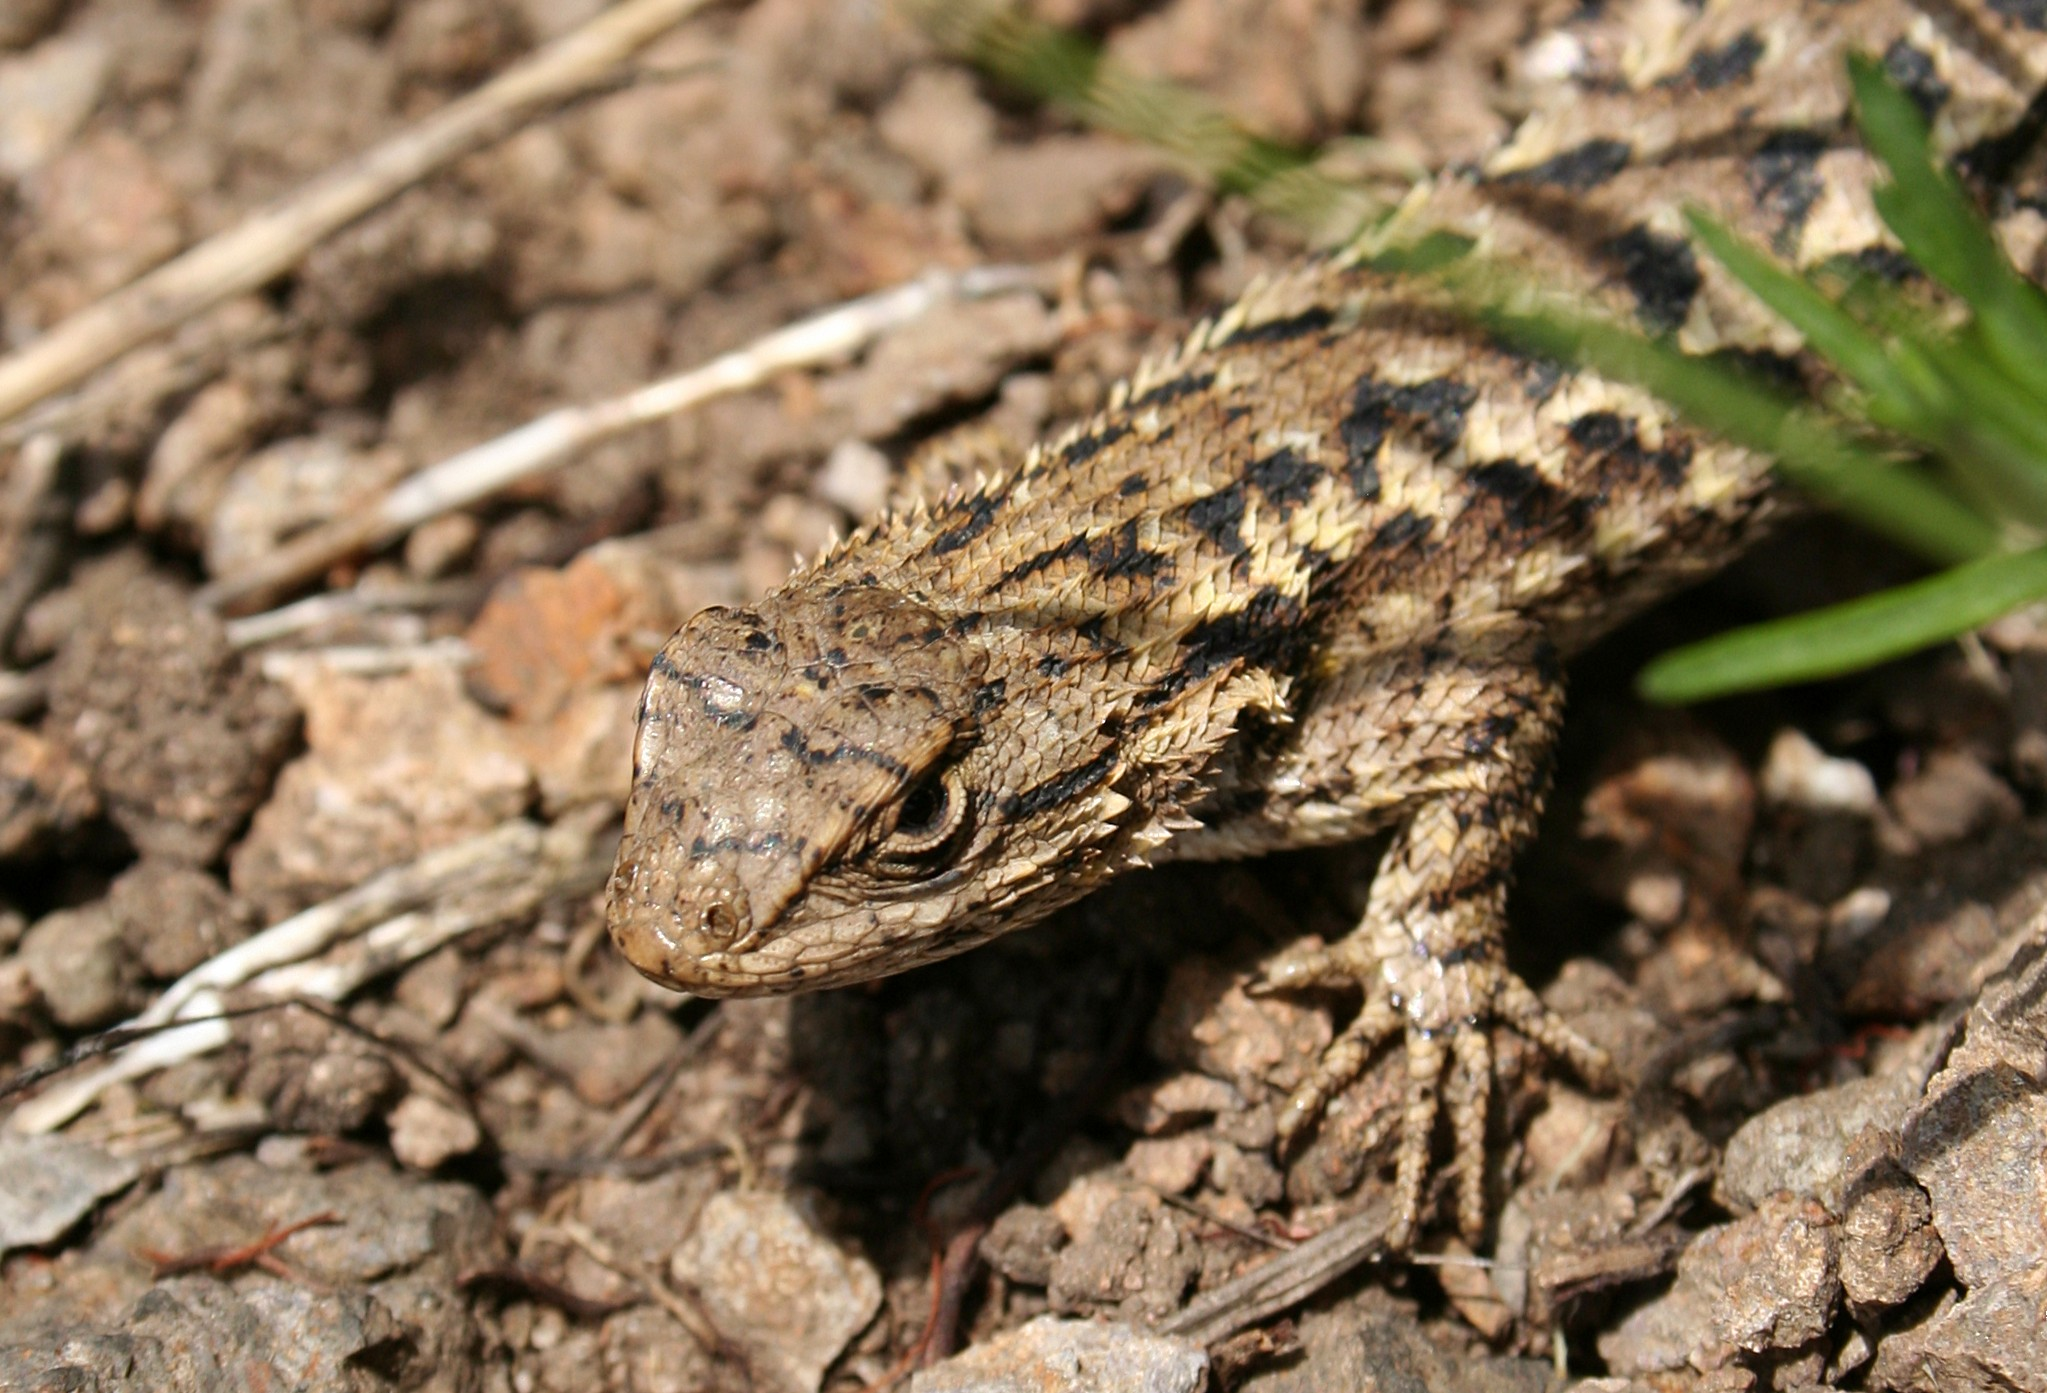 Fence lizard, photo by Calibas - own work, CC BY-SA 3.0, https://commons.wikimedia.org/w/index.php?curid=2967183